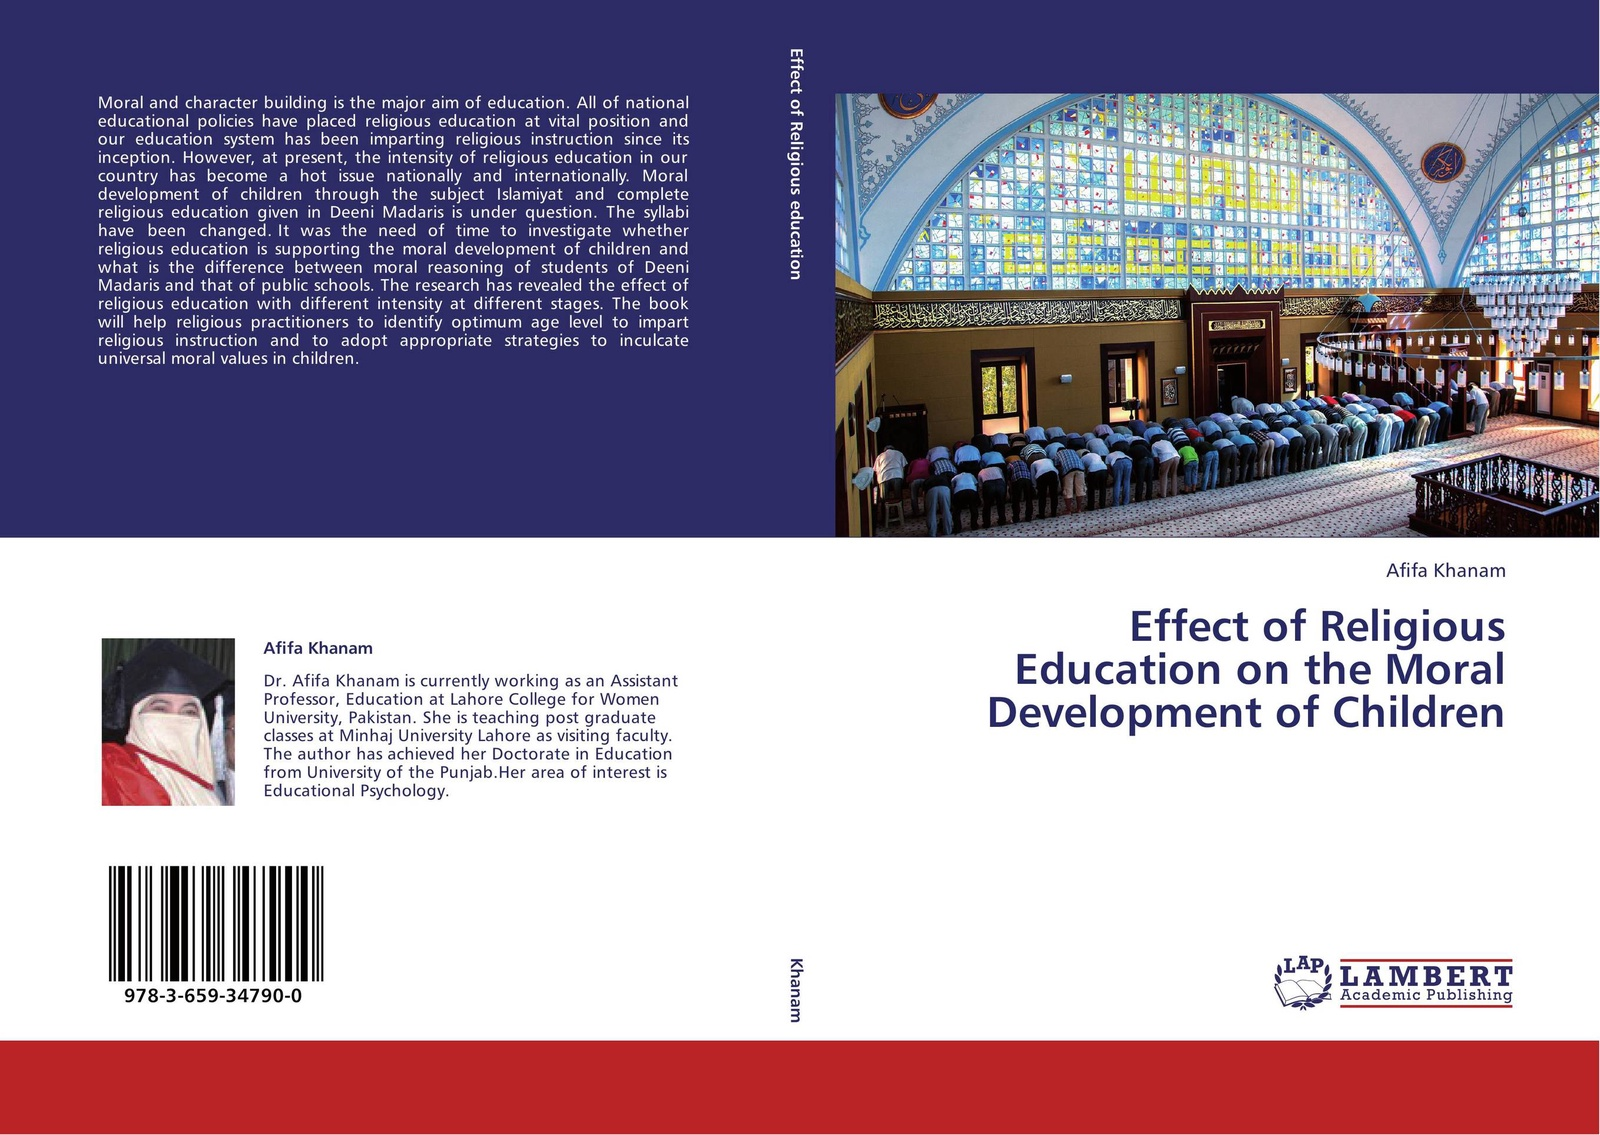 Afifa Khanam Effect of Religious Education on the Moral Development of Children afifa khanam effect of religious education on the moral development of children